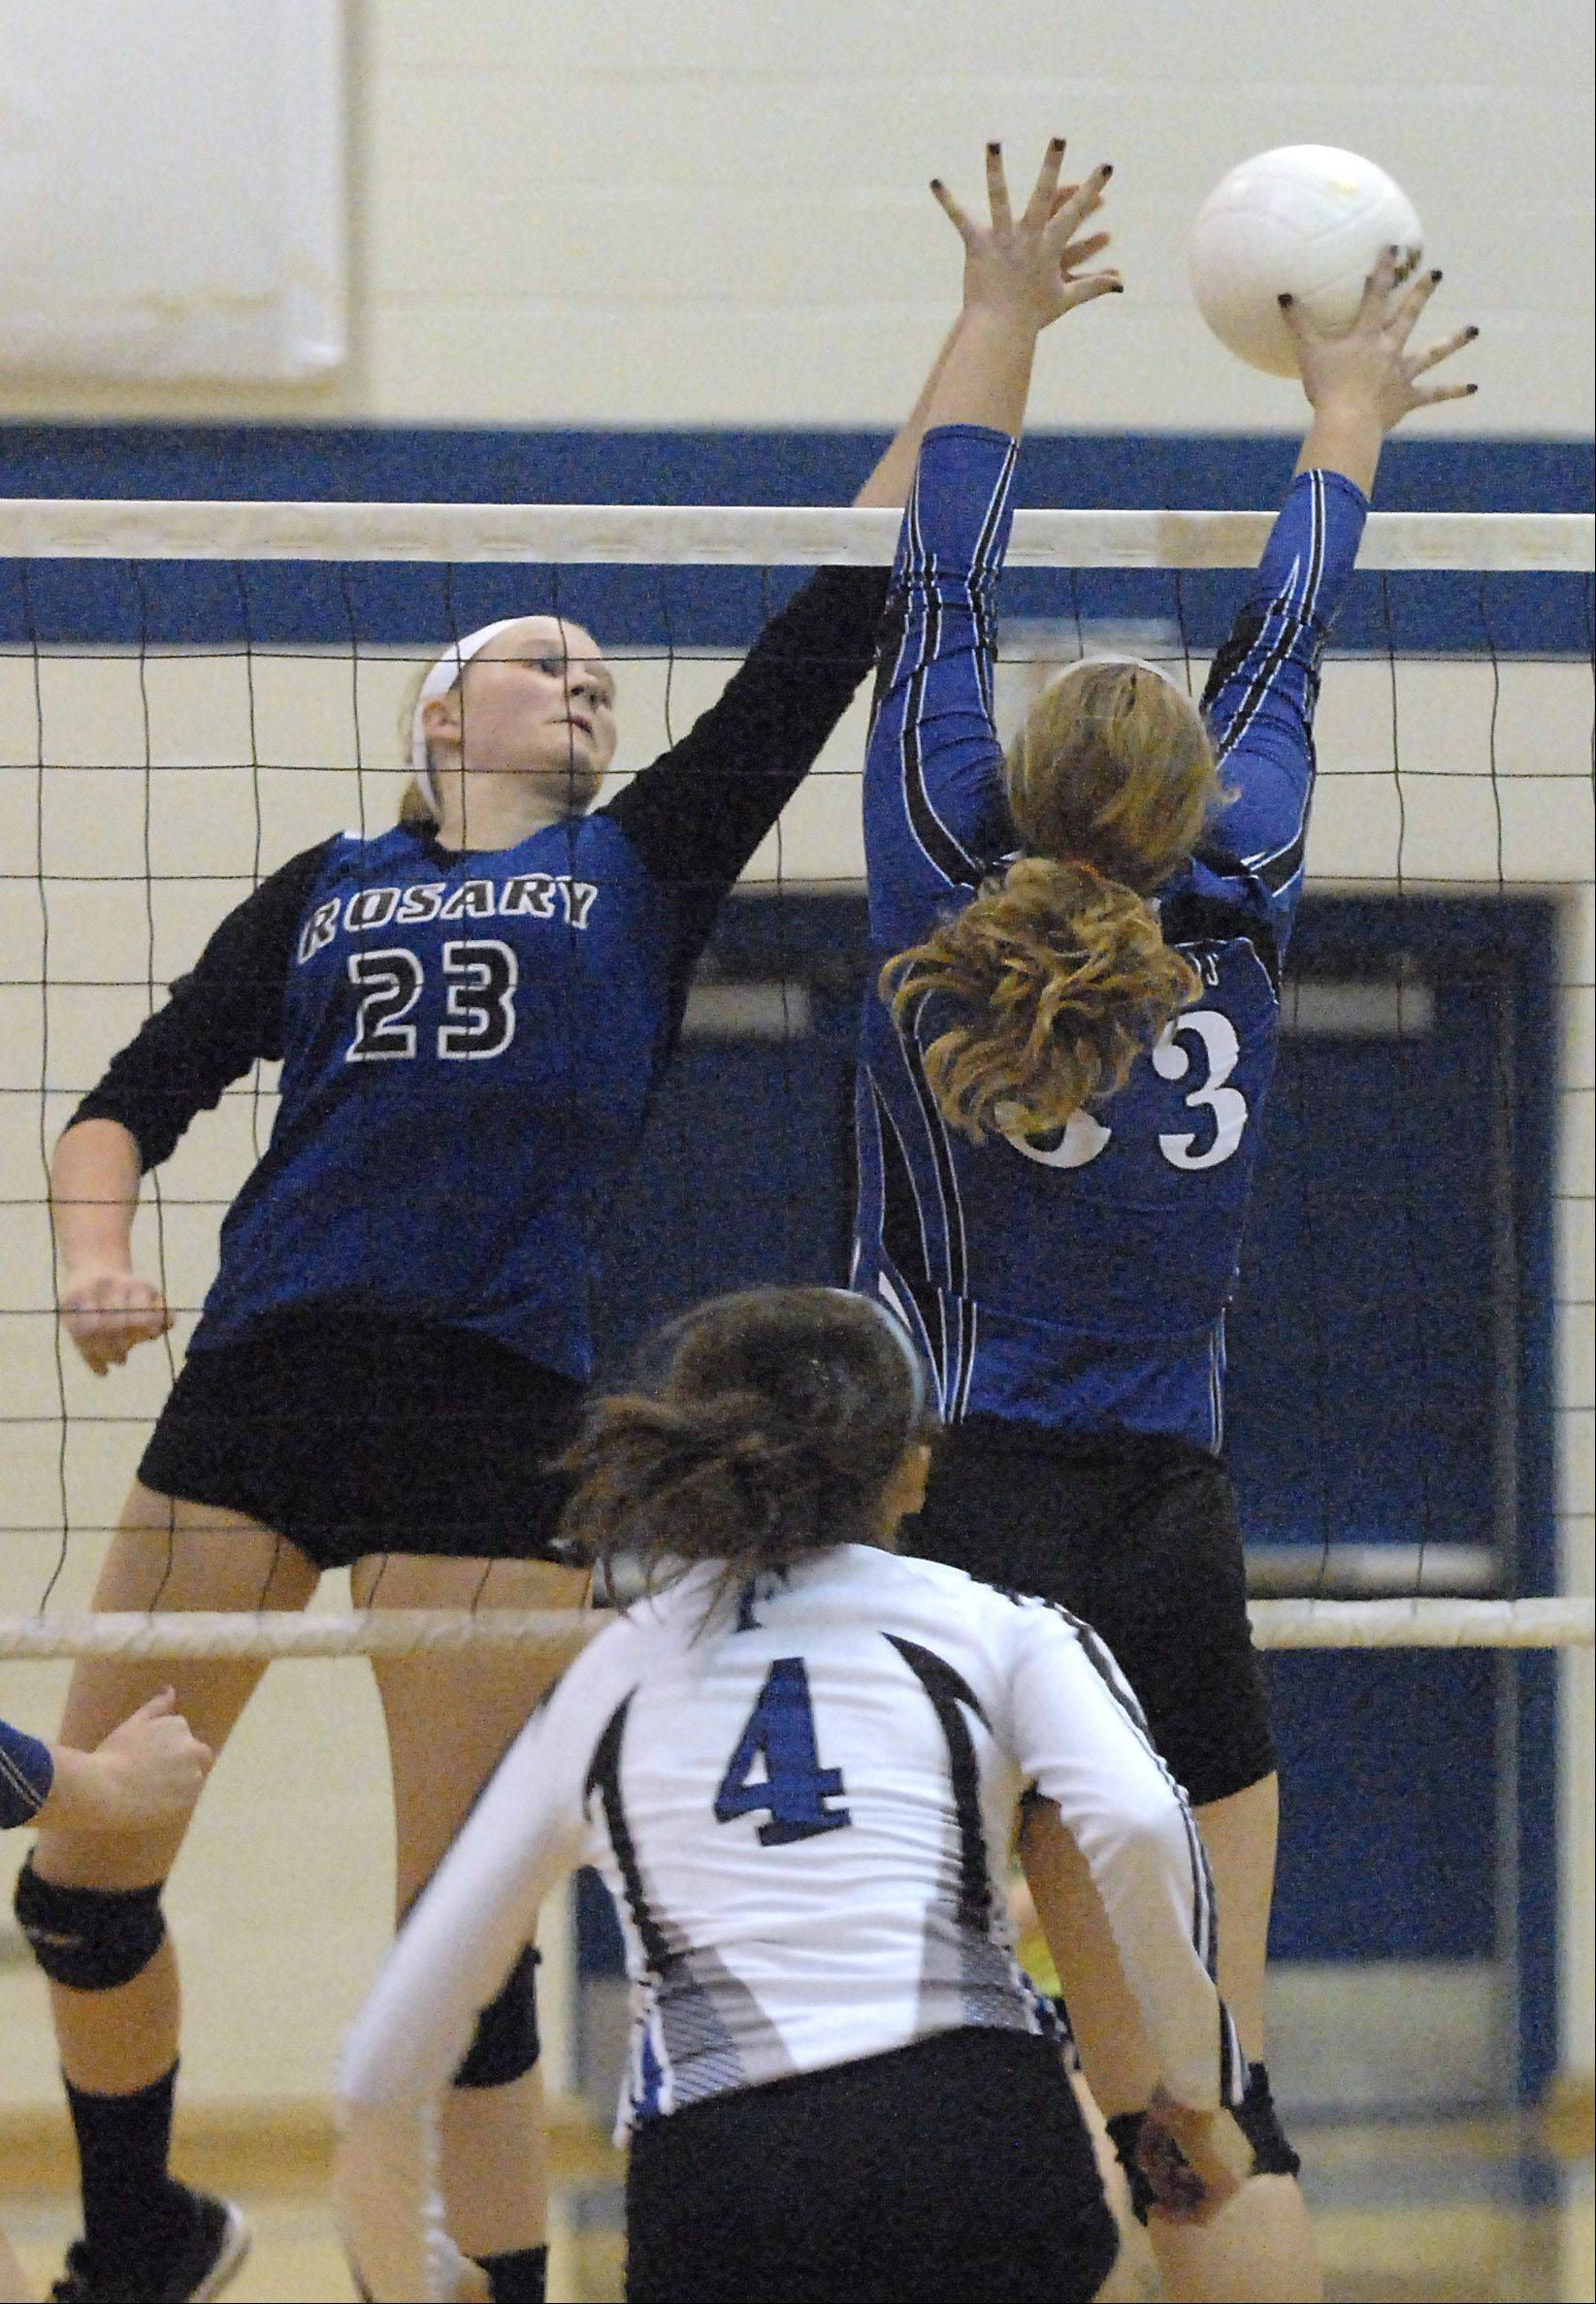 Rosary's Michaela Ping tips the ball over the net toward St. Francis' Casey Salandra in the first game on Wednesday, October 3.